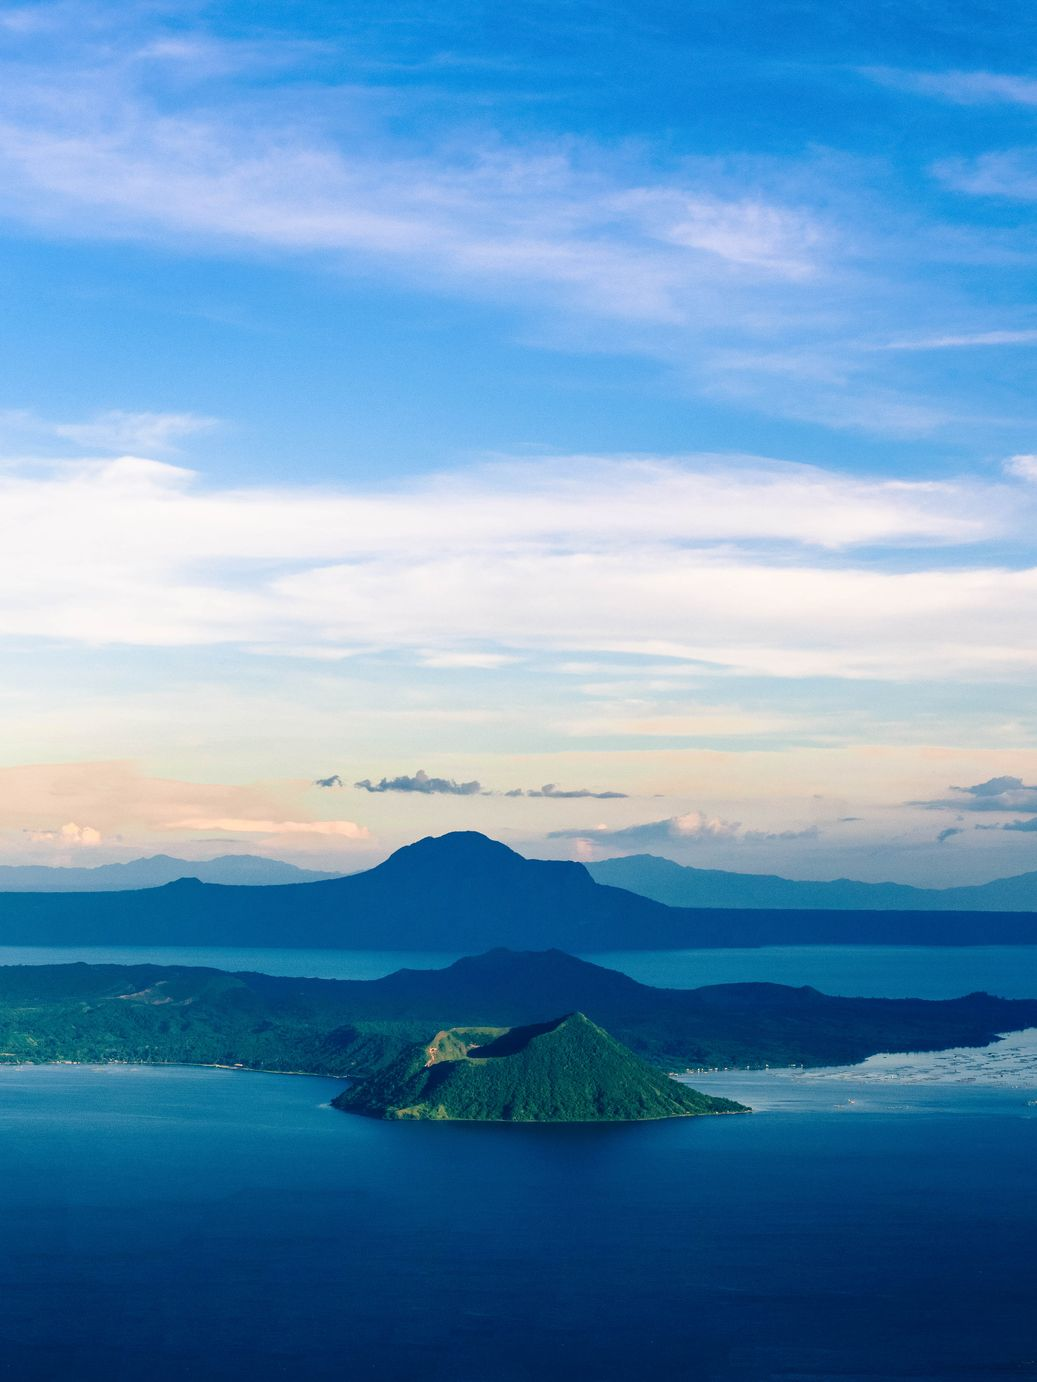 View of Taal Volcano, Philippines from a distance